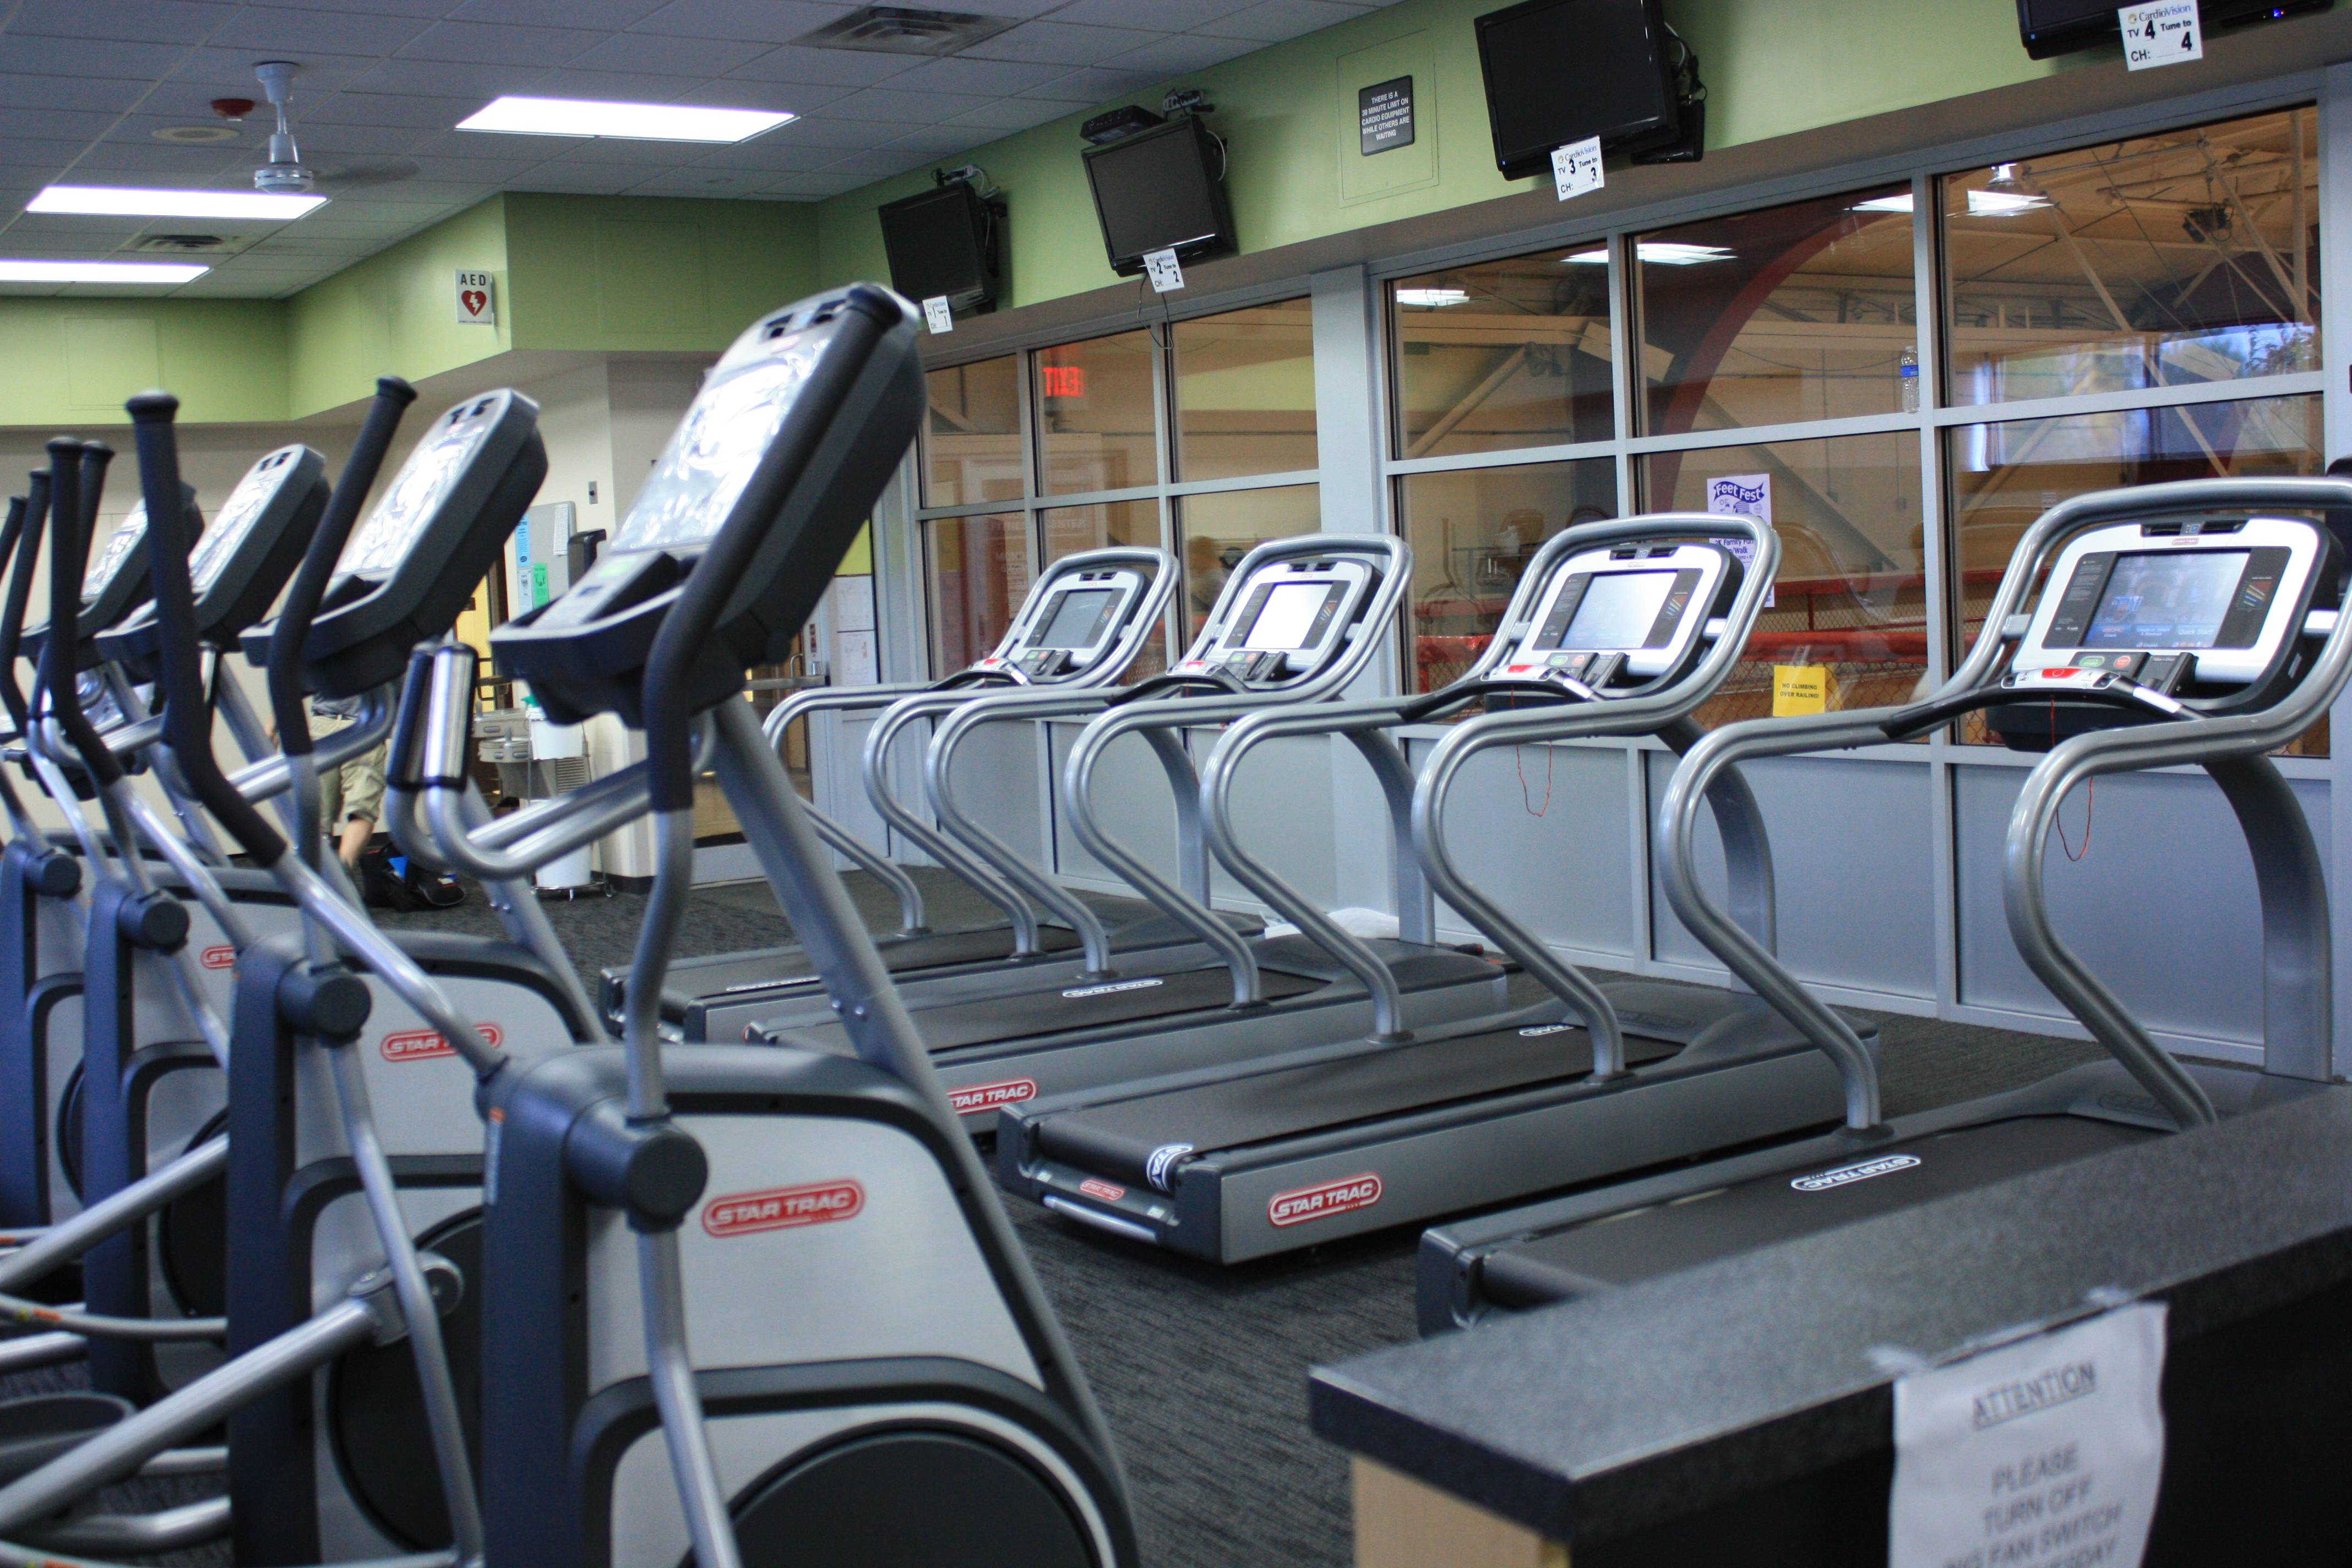 New cardio equipment was added to the fitness center in Summer of 2012.